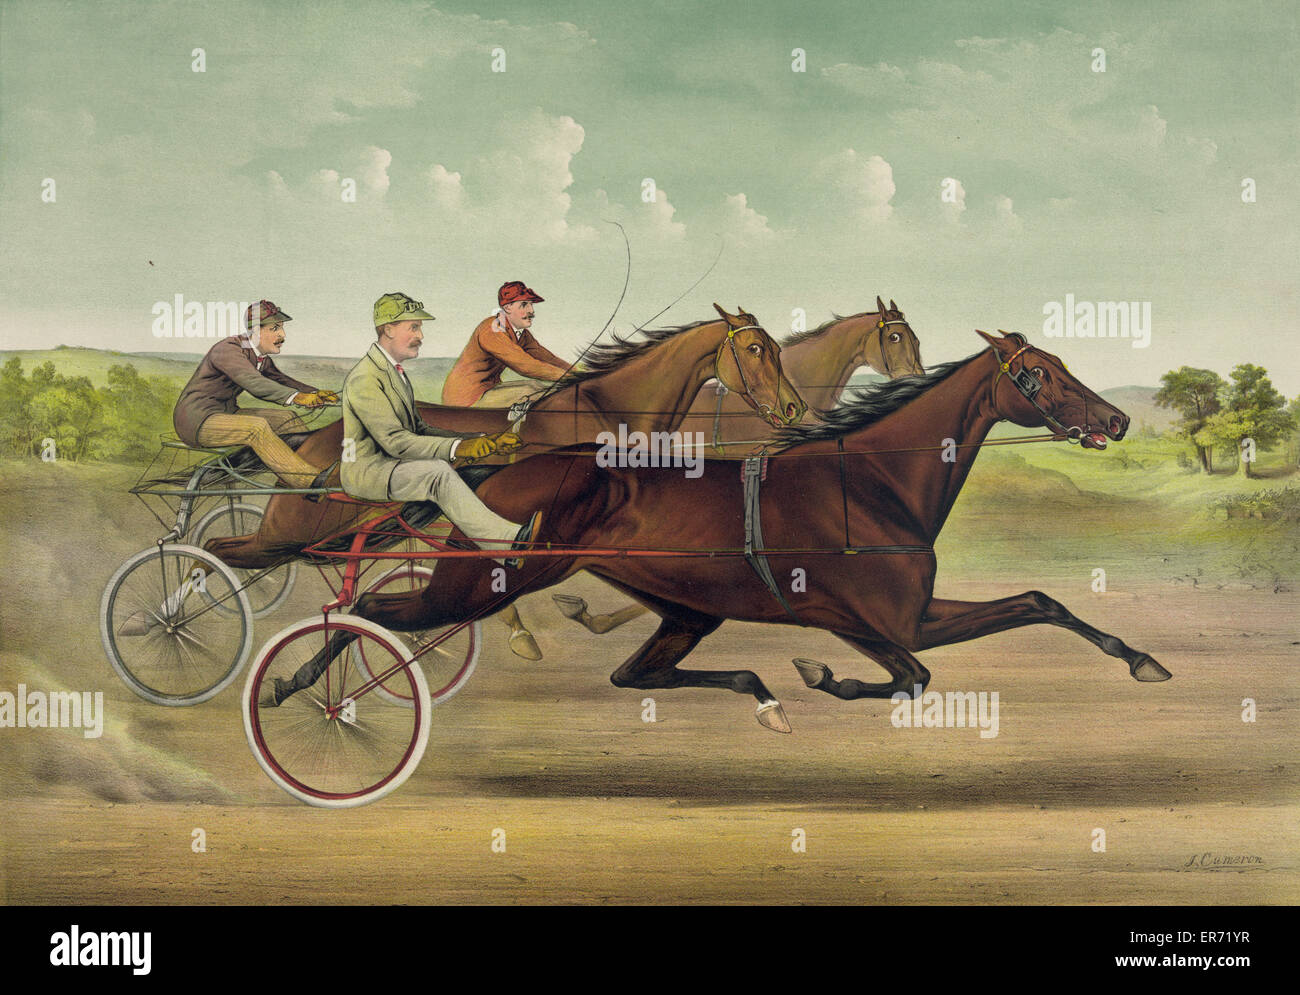 The grand trotting Queen Nancy Hanks driven by Budd Doble. Date c1892. - Stock Image